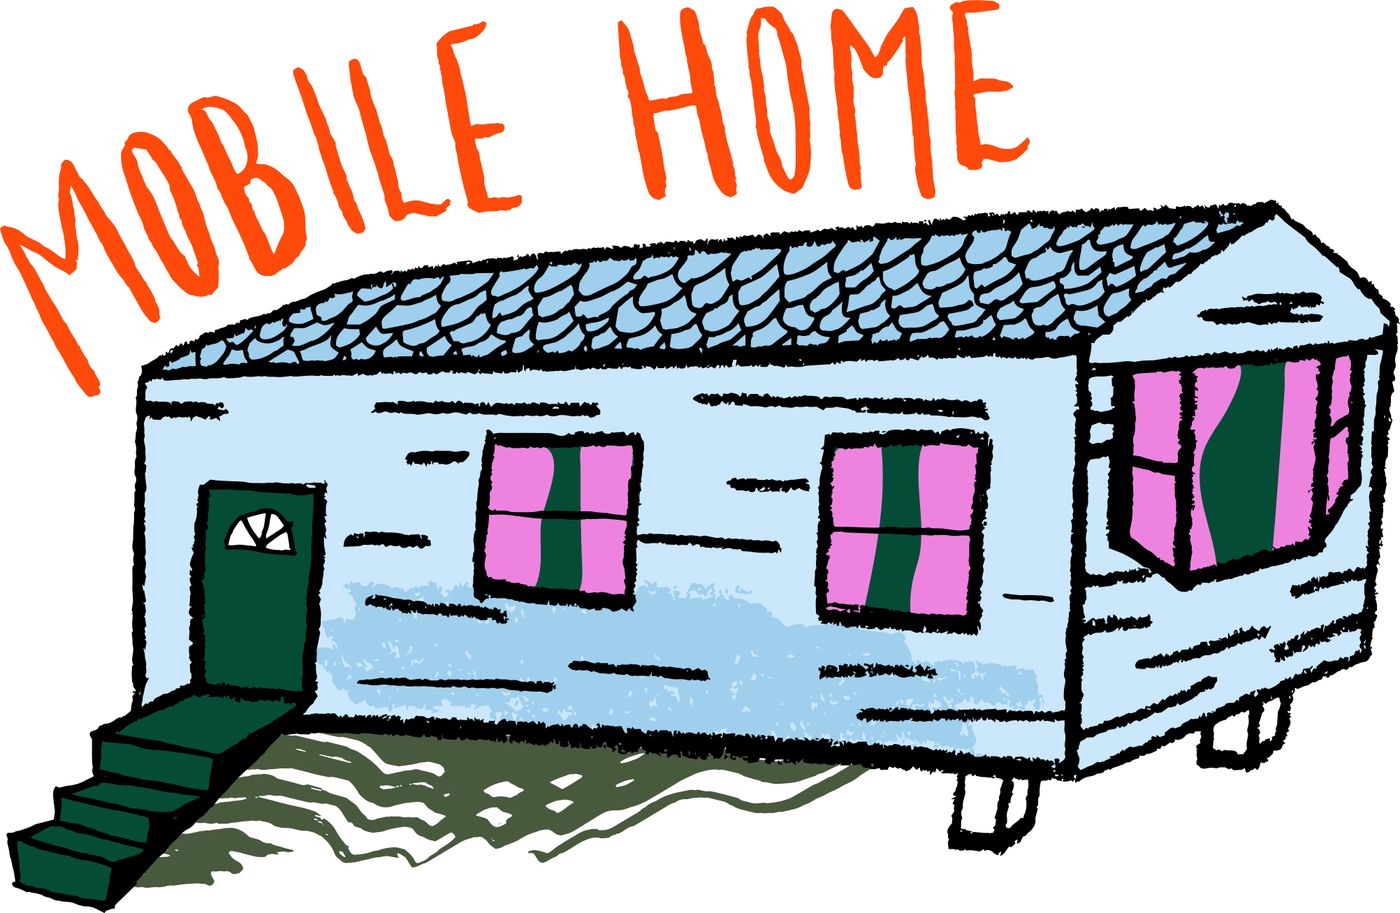 Mobile homes 101: Who's living in them and how they're made ... on motor scooter meme, co op meme, storage unit meme, time share meme, dwelling meme, live with parents meme, villa meme, renter meme, black rabbit meme, camper trailer meme, small house meme, private property meme, patio meme, inseparable meme, motorhome meme, no boat meme, new construction meme, income meme, hurricane supplies meme, trailer house meme,